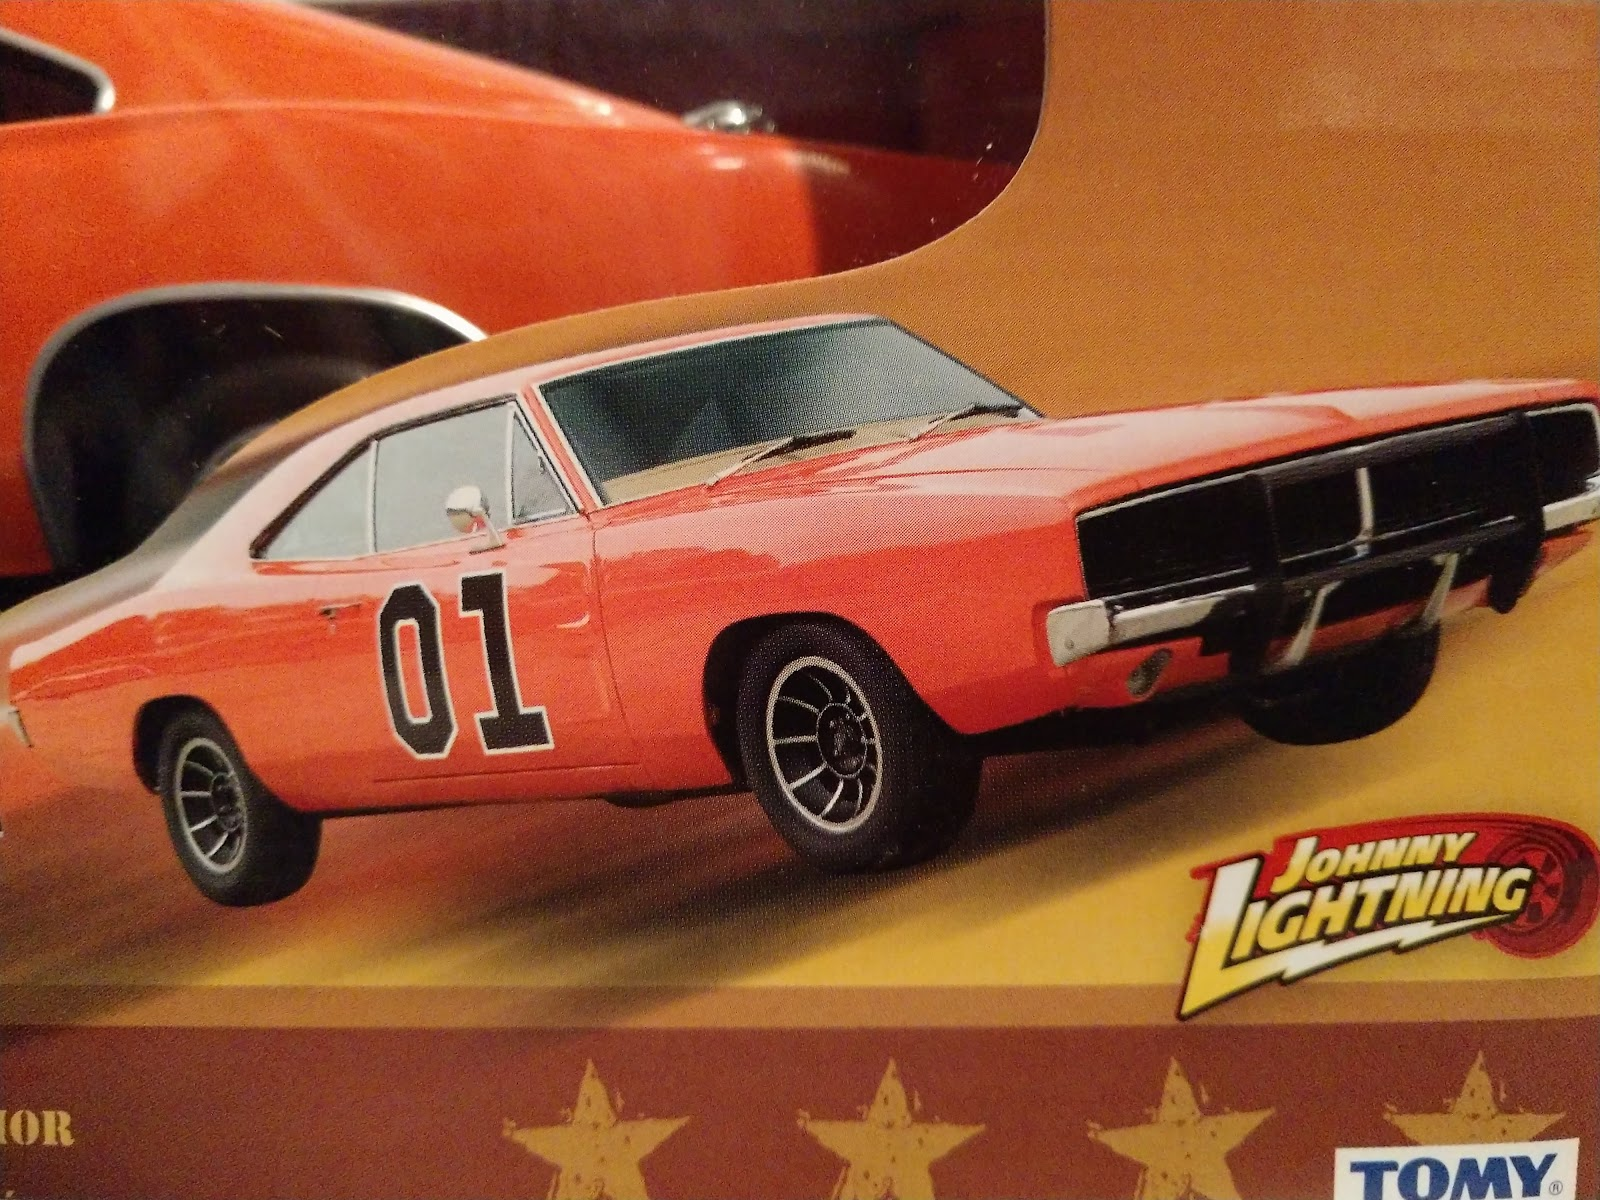 Dukes of Hazzard Collector: The Entire Line of Dukes of